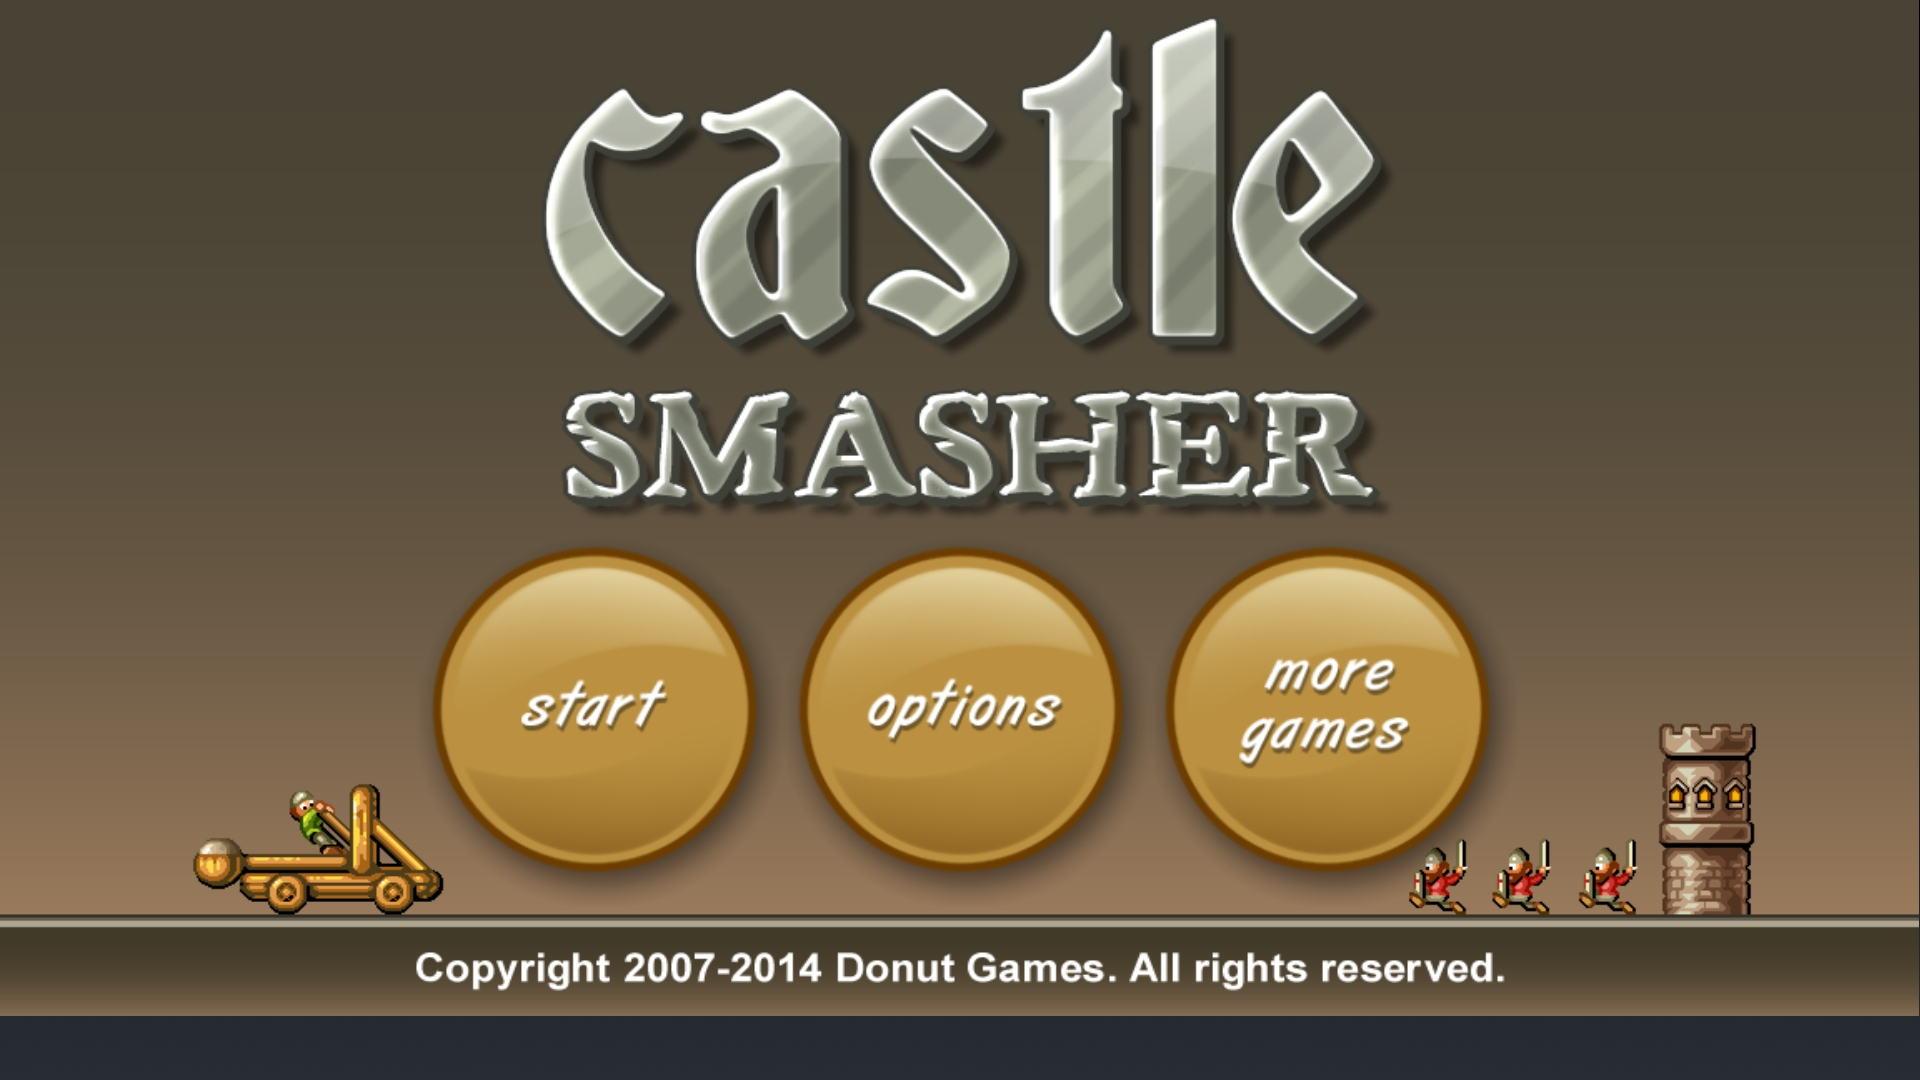 Bamse: Castle Smasher: Challenges: 29 Alone In The Wood (Android) 27 points on 2019-09-06 05:50:21